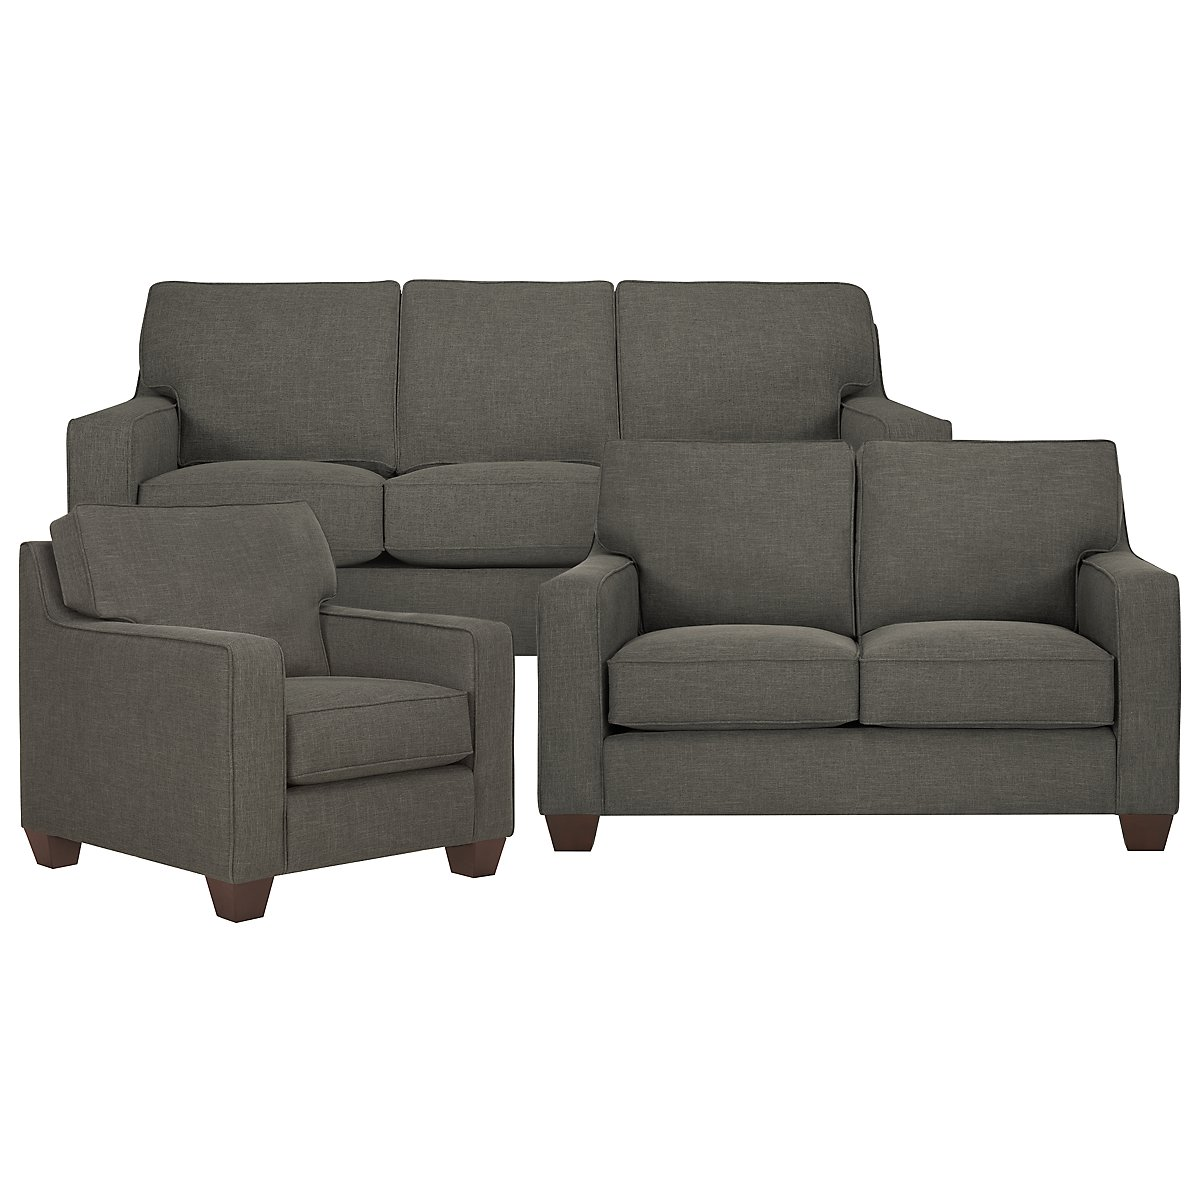 city furniture york dk gray fabric sofa